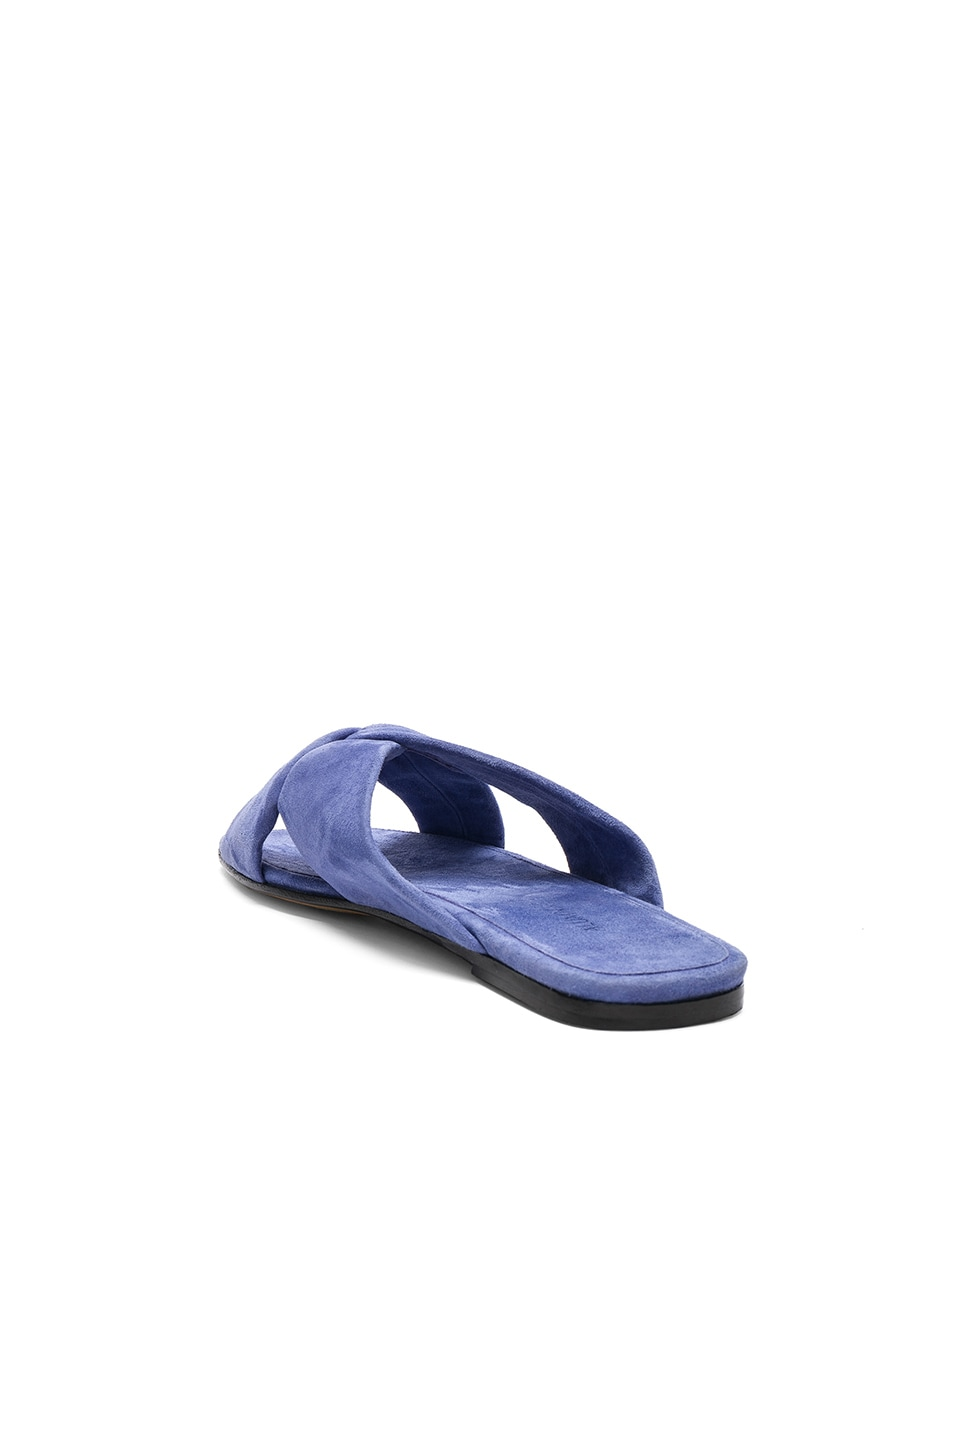 Image 3 of ALUMNAE Soft X Slide Sandals in Camoscio Dawn